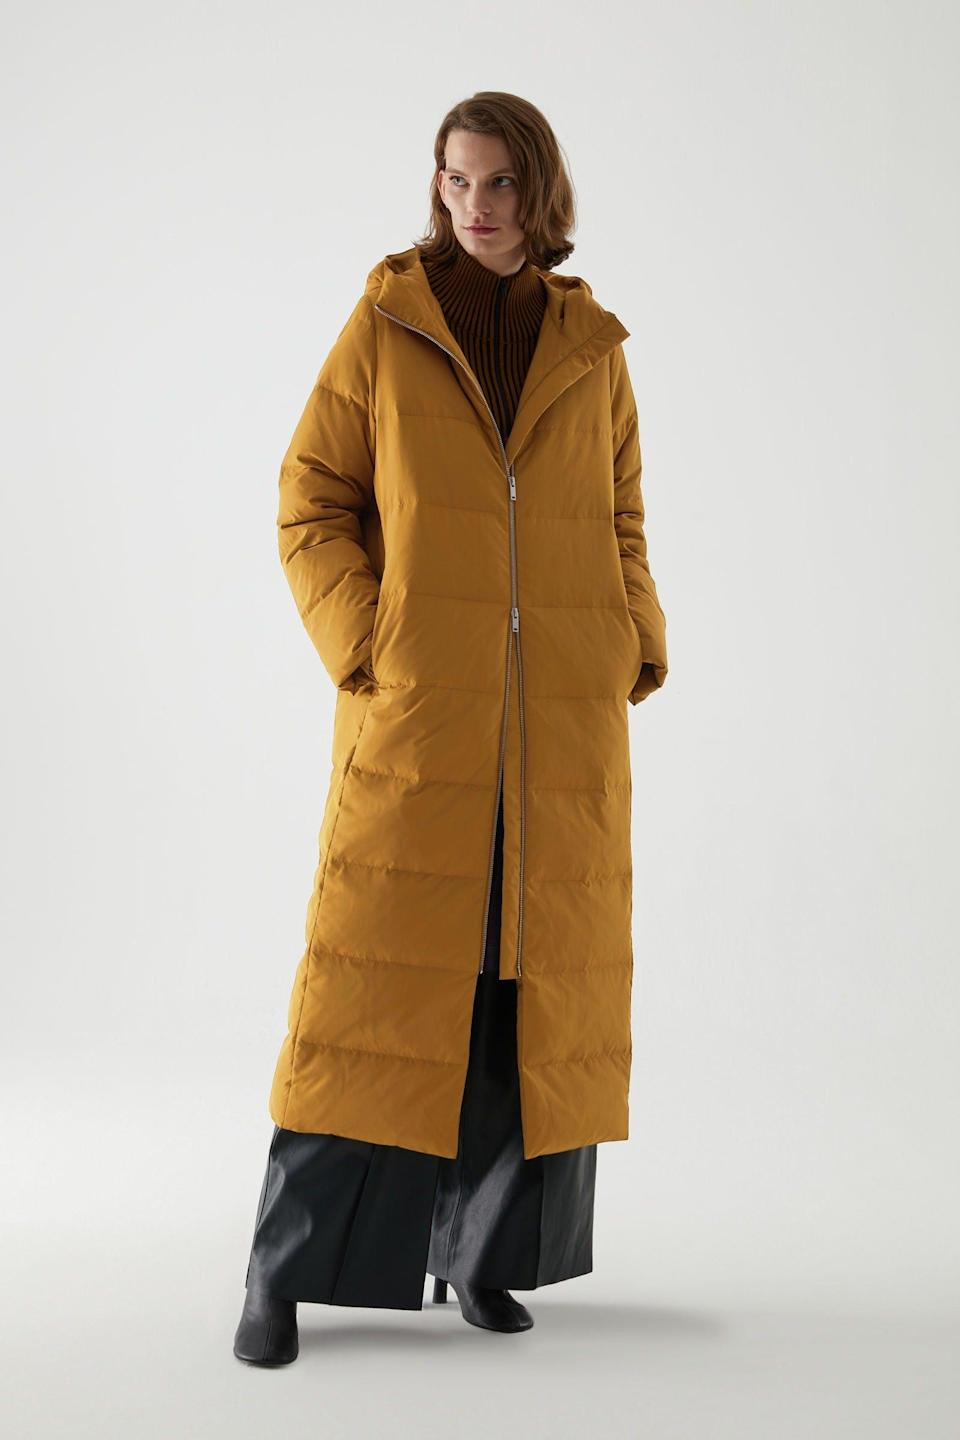 """<br><br><strong>COS</strong> Long Hooded Puffer Coat, $, available at <a href=""""https://www.cosstores.com/en_gbp/women/womenswear/coats-and-jackets/coats/product.long-hooded-puffer-coat-yellow.0916508002.html?"""" rel=""""nofollow noopener"""" target=""""_blank"""" data-ylk=""""slk:COS"""" class=""""link rapid-noclick-resp"""">COS</a>"""